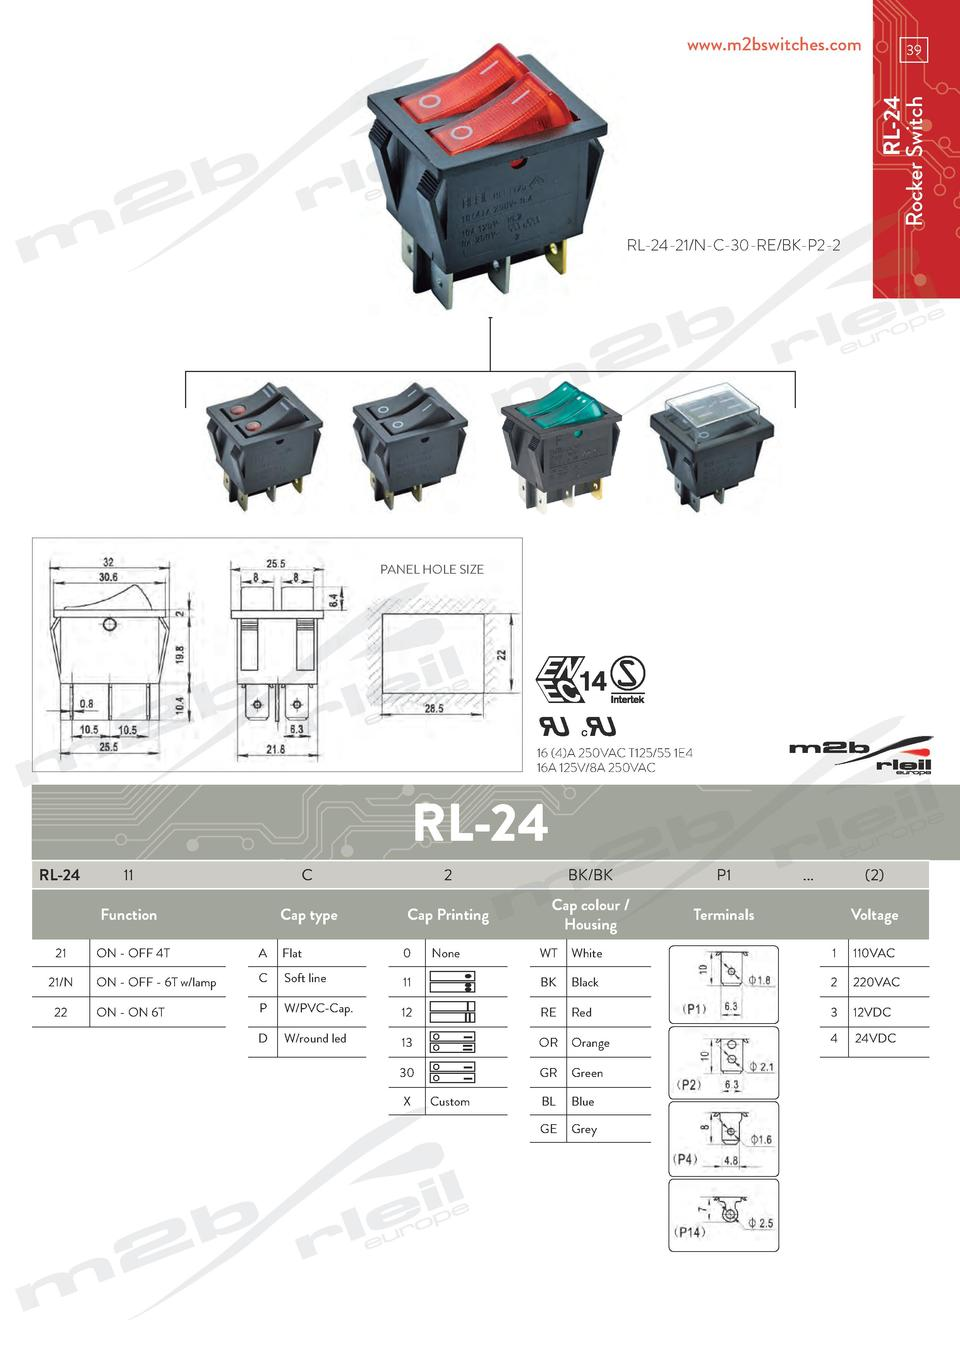 www.m2bswitches.com  RL-24 Rocker Switch  39  RL-24-21 N-C-30-RE BK-P2-2  PANEL HOLE SIZE  16  4 A 250VAC T125 55 1E4 16A ...